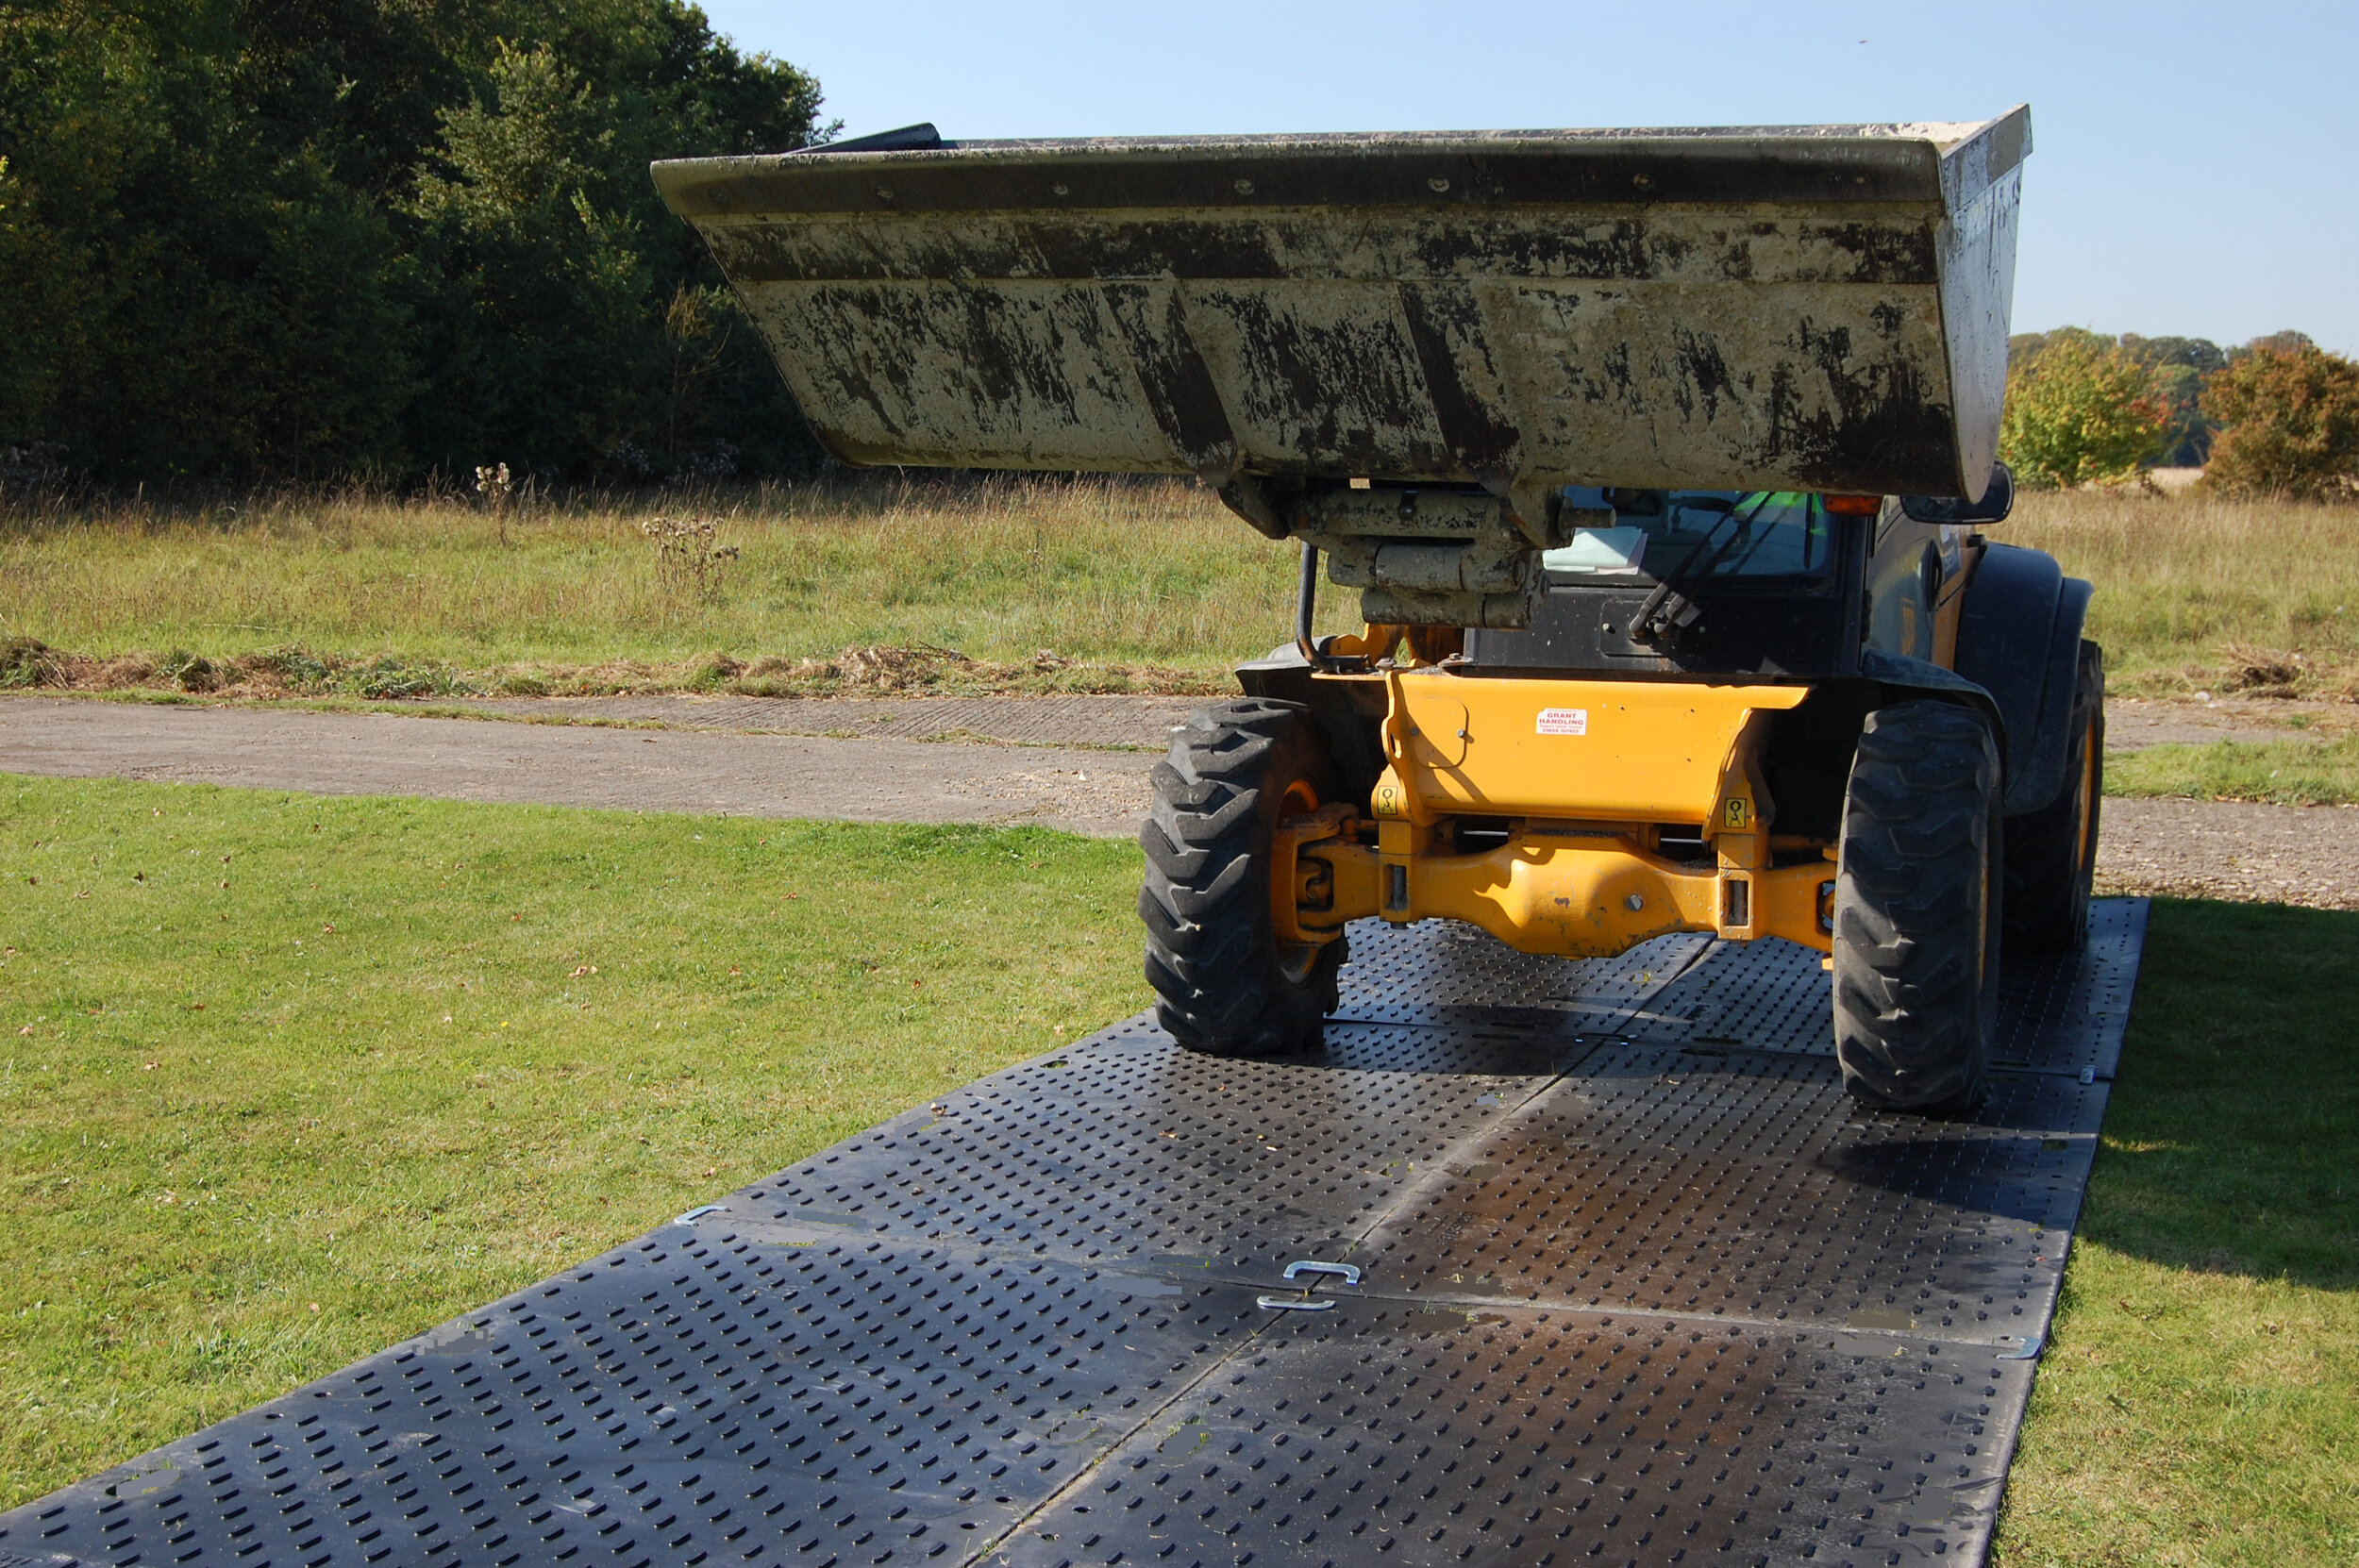 Provide support for heavy equipment and moving loads by creating a trackway using EverRoad Access Mats